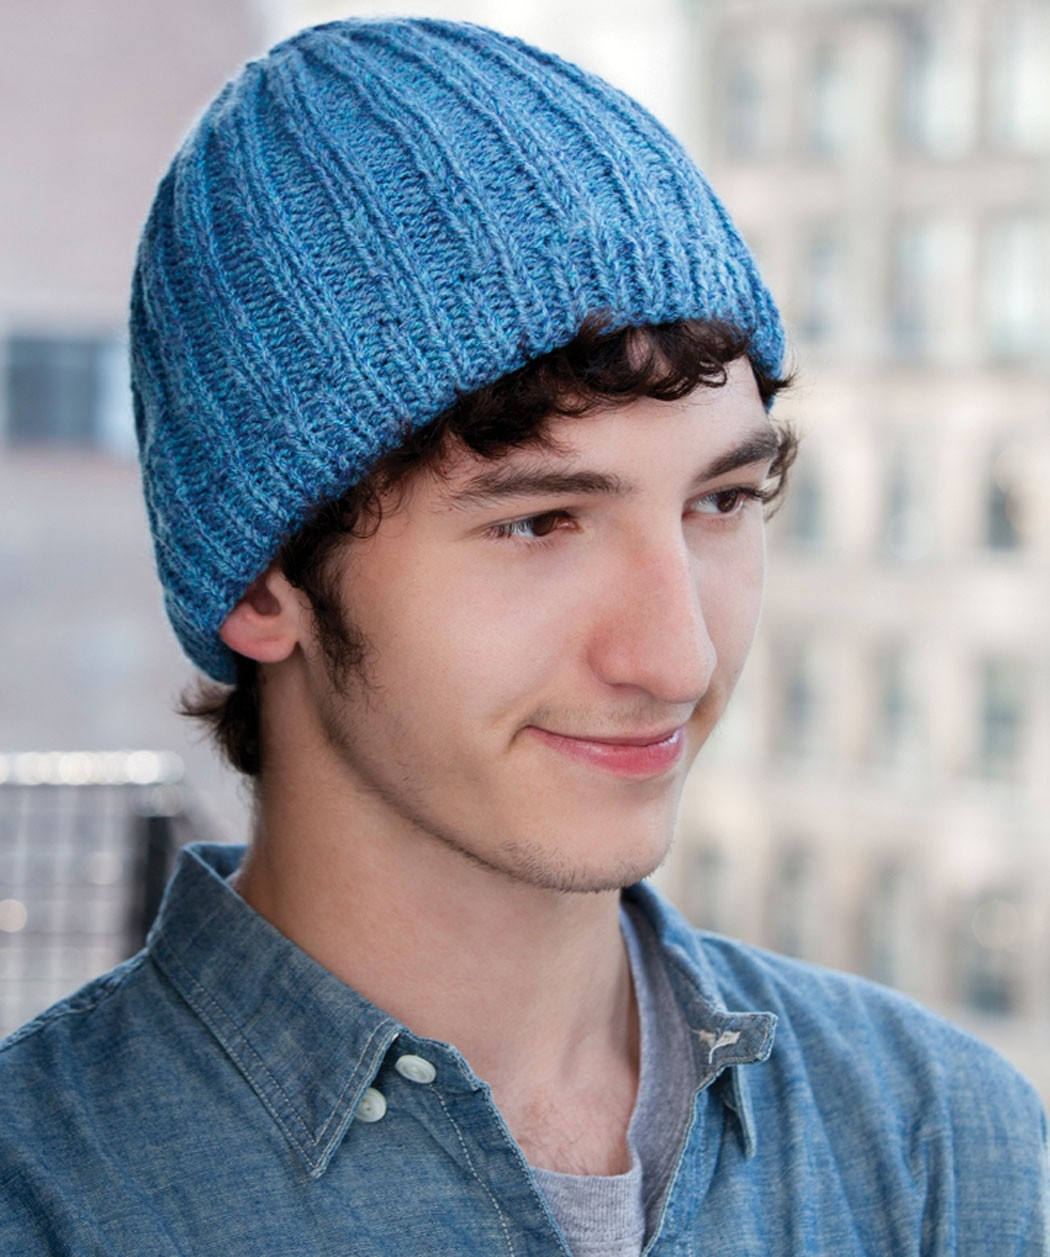 Rib Hat Knitting Pattern For Men